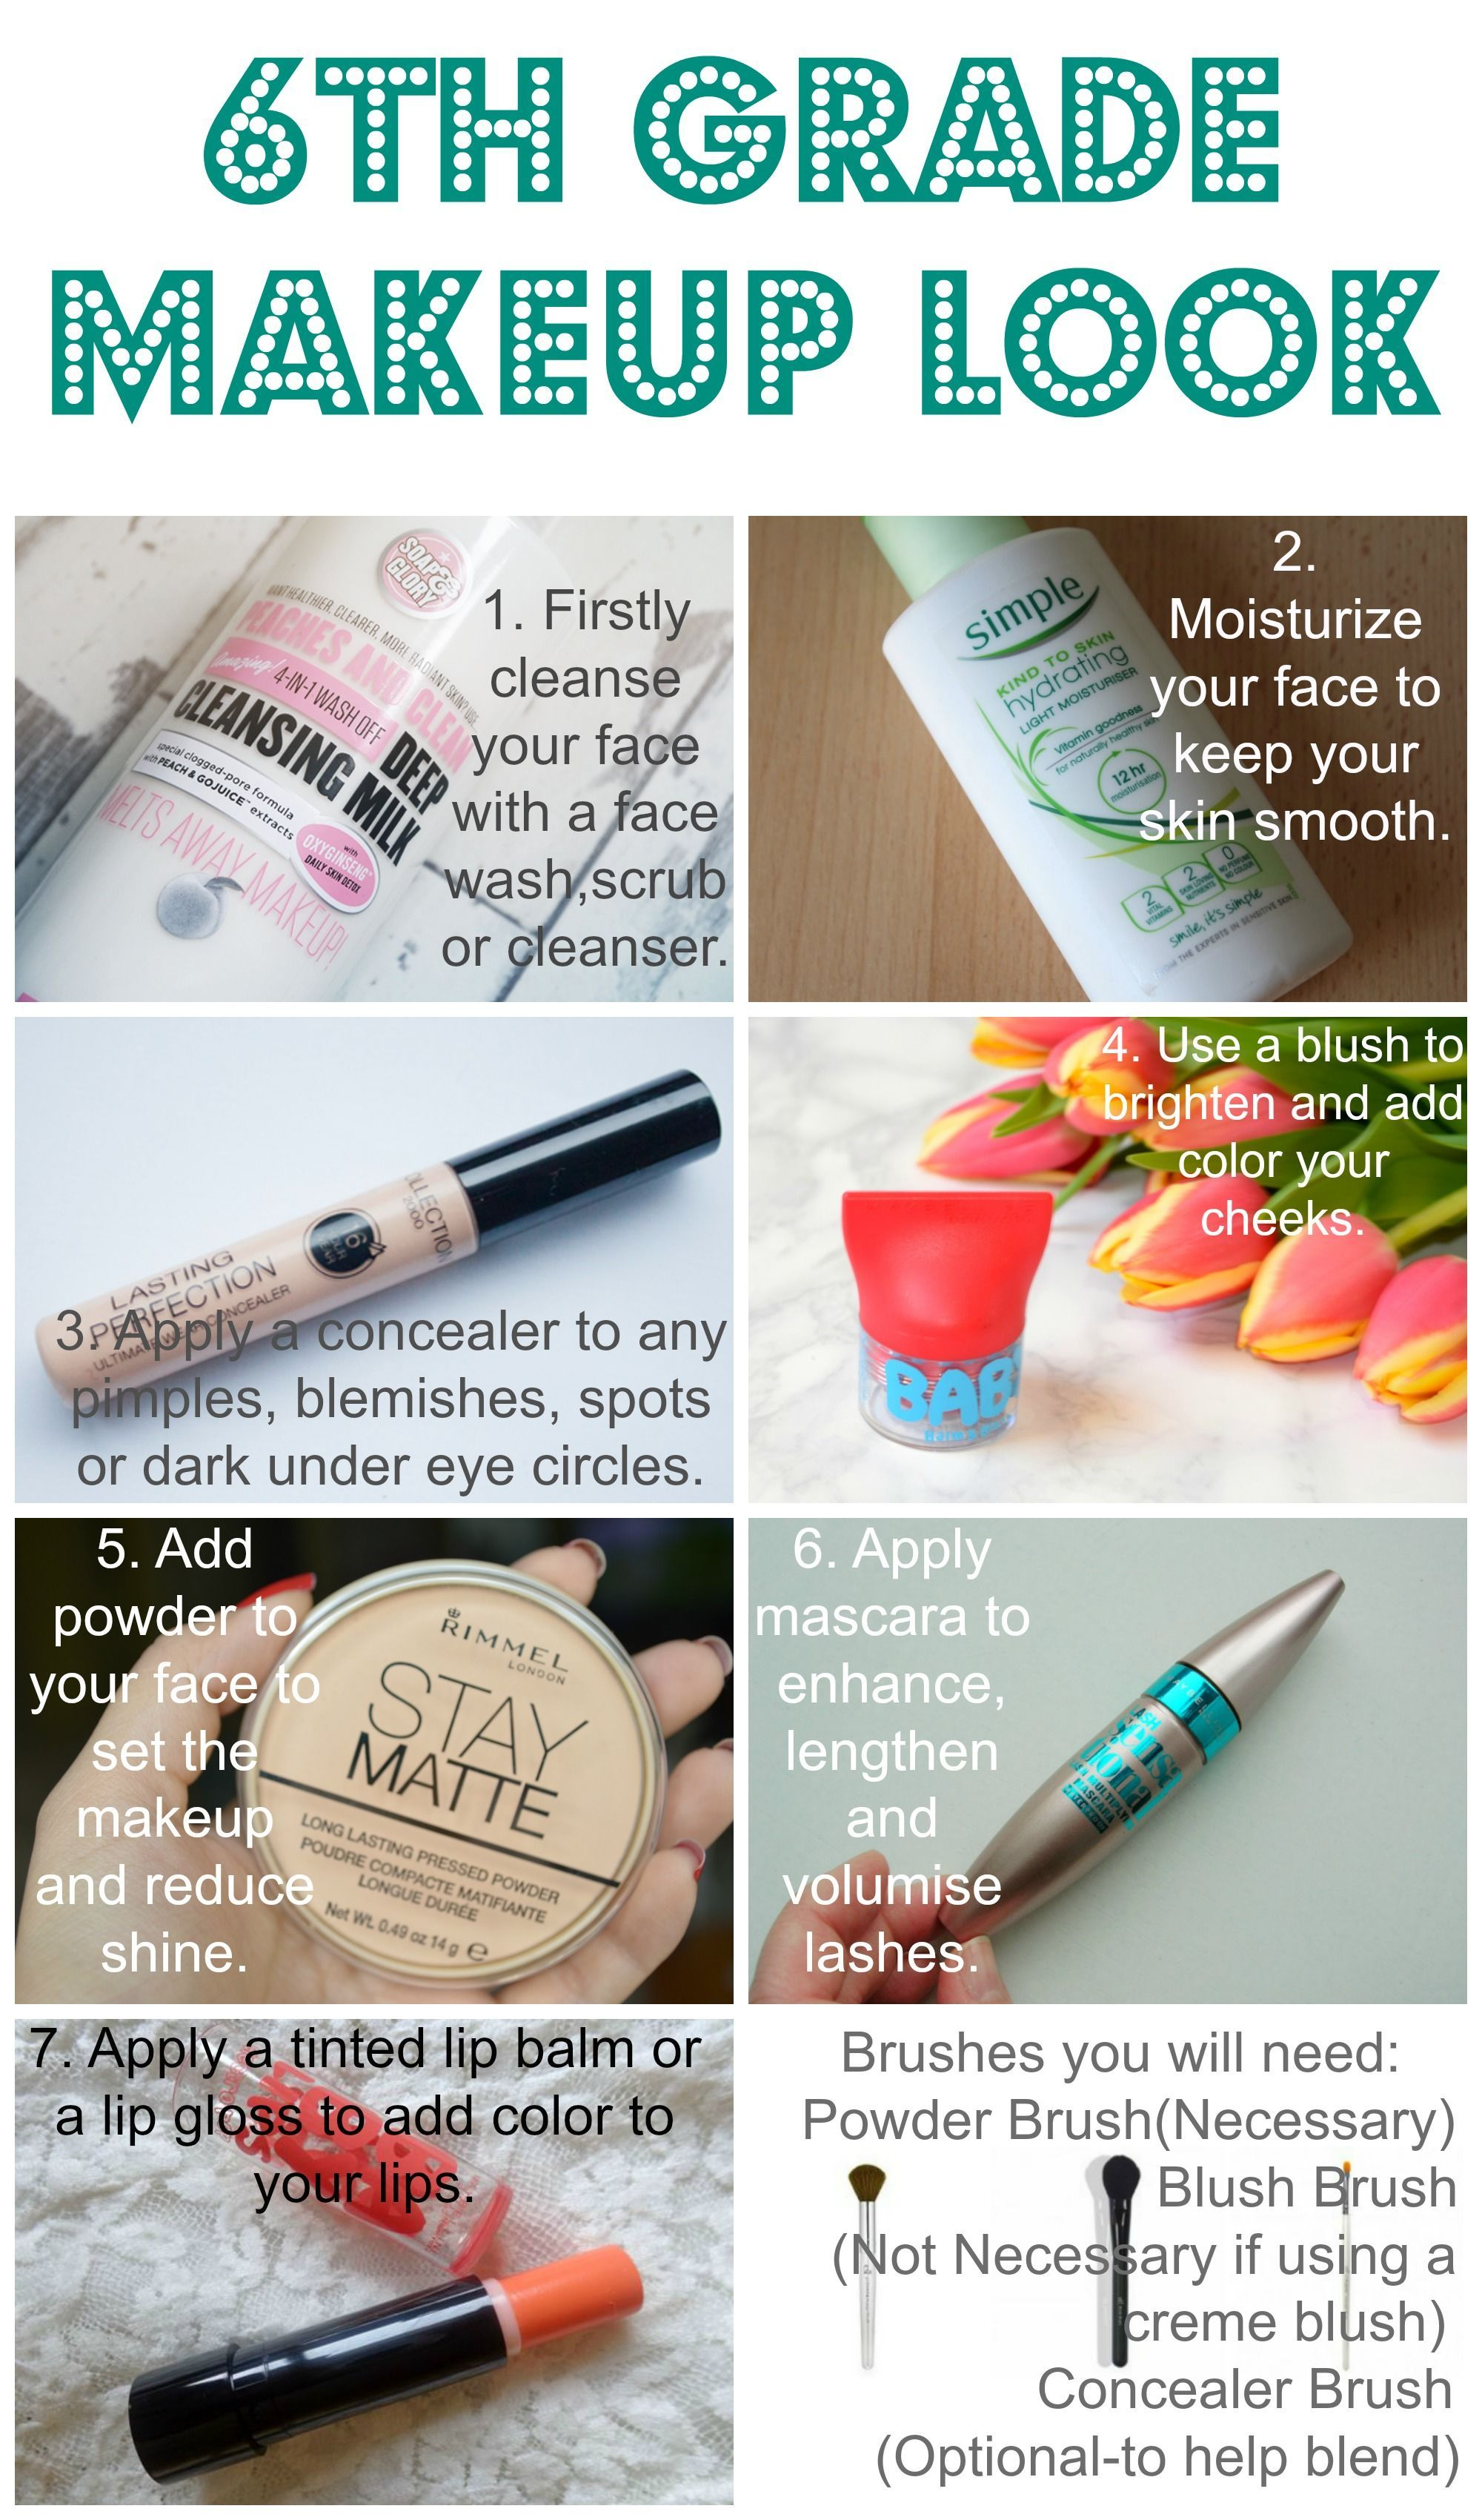 Follow These Steps To Create The Perfect School Makeup For 6th